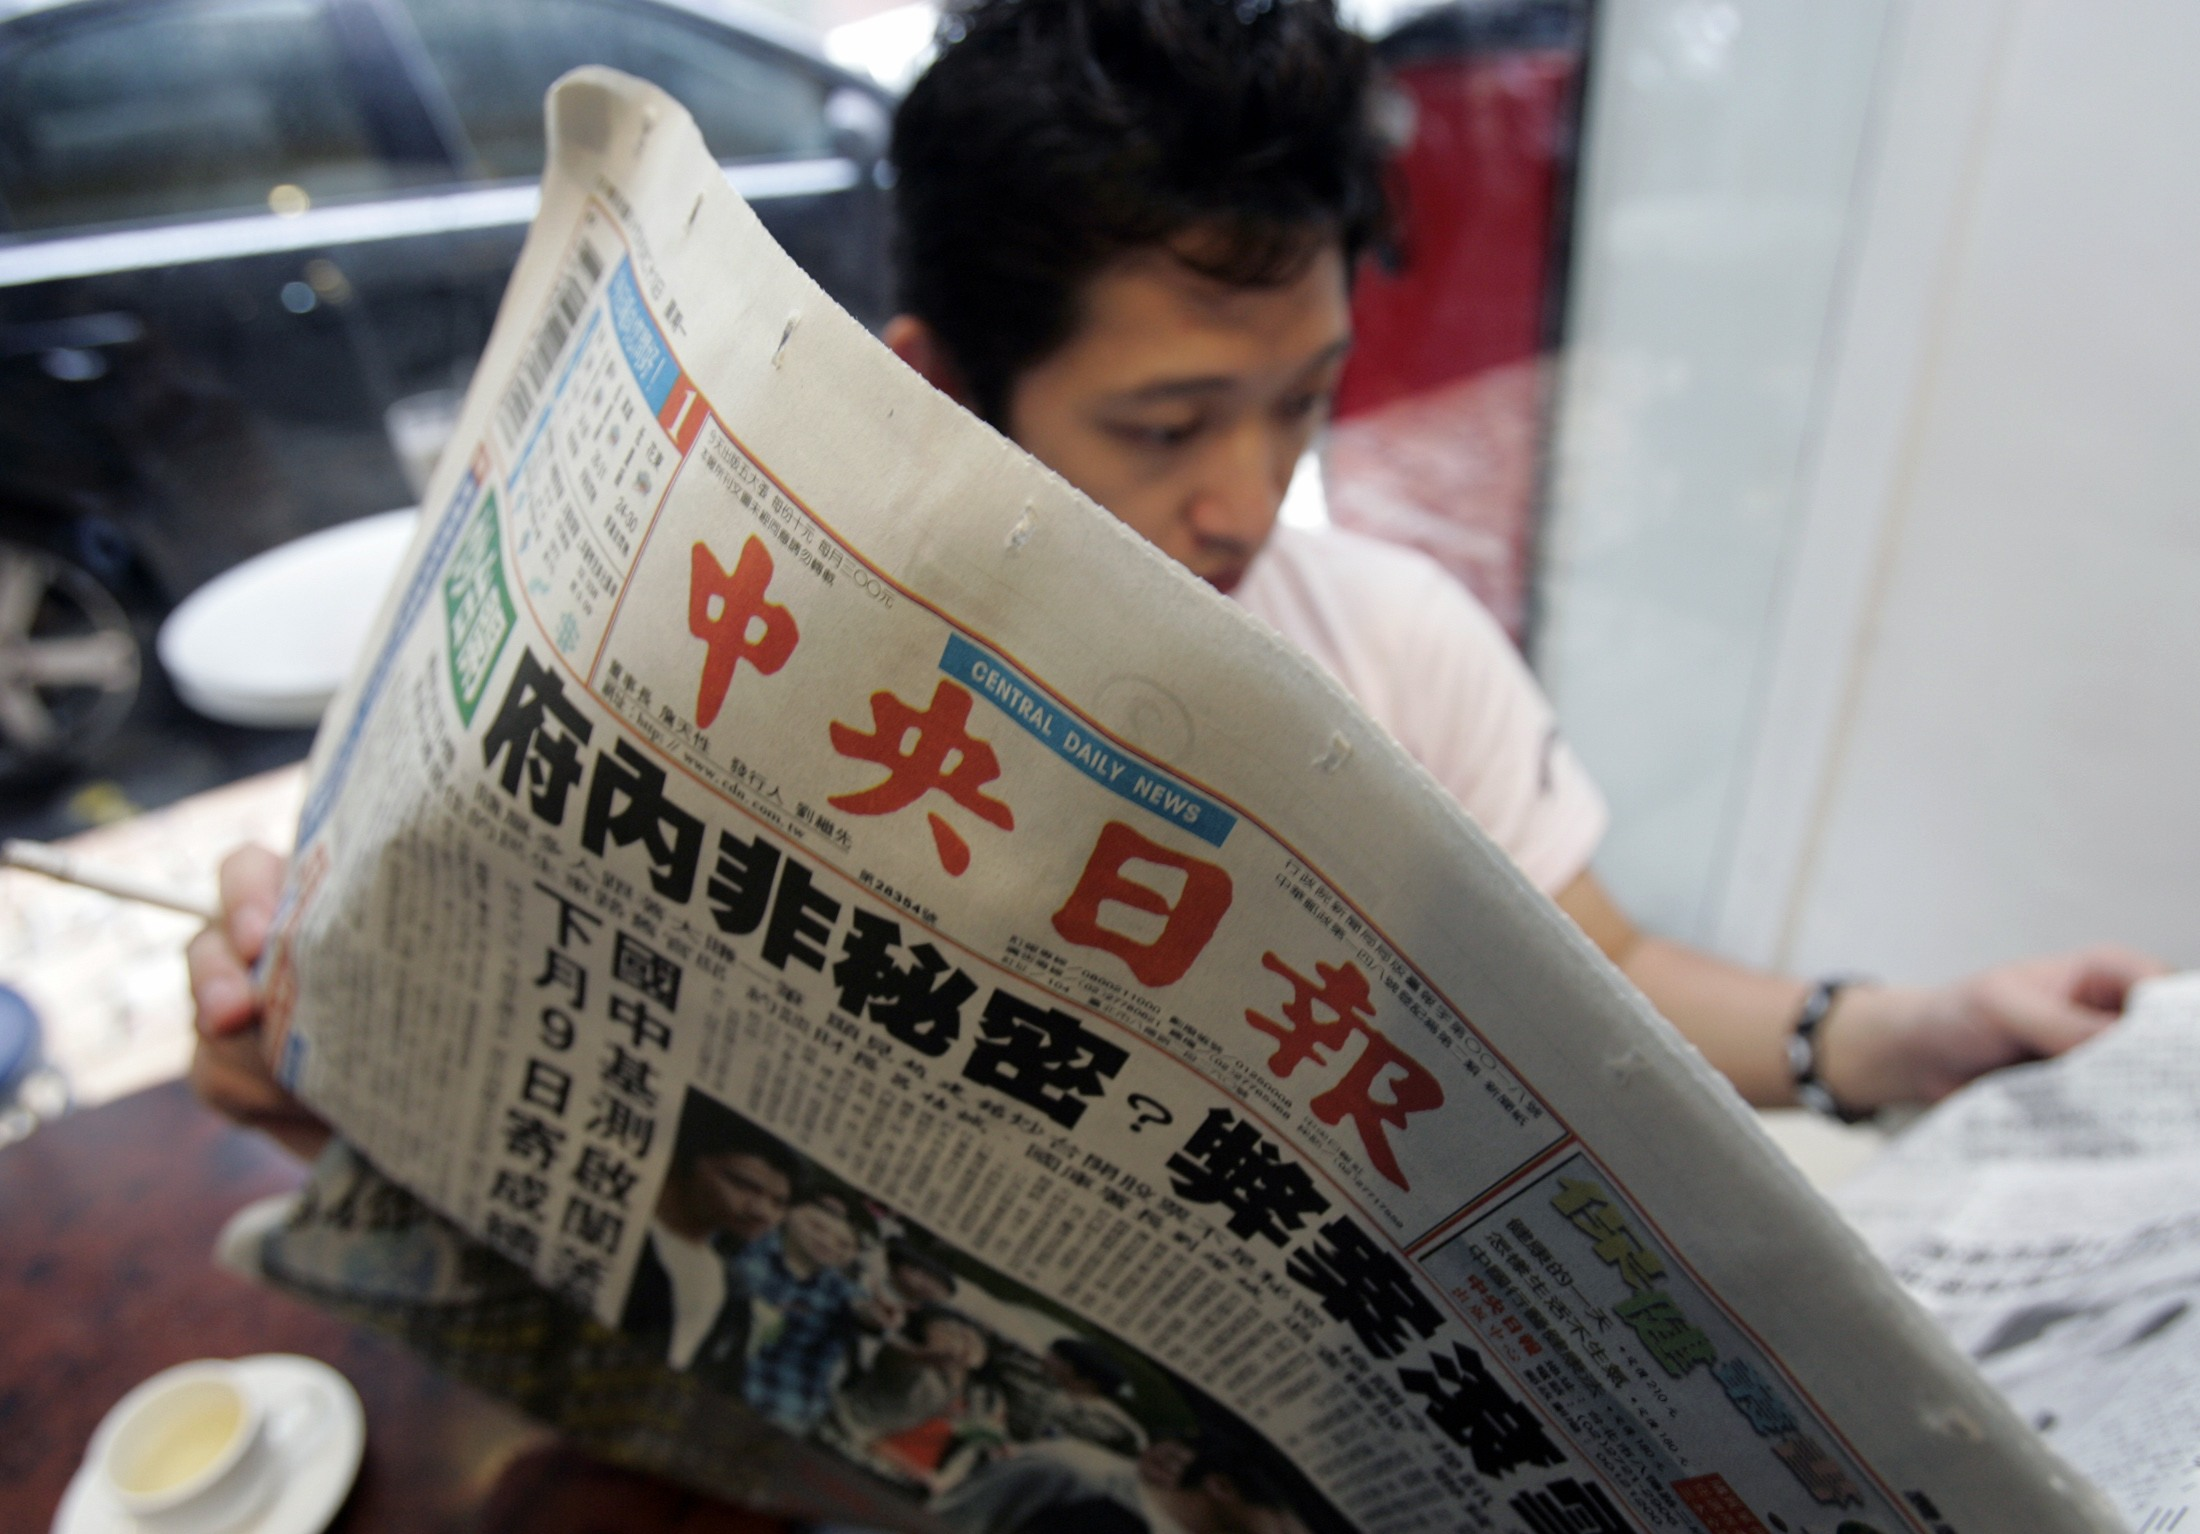 A man reads the Central Daily News in Taipei May 29, 2006. The 78-year-old newspaper, which is owned by the Nationalist Party or Kuomintang (KMT), is